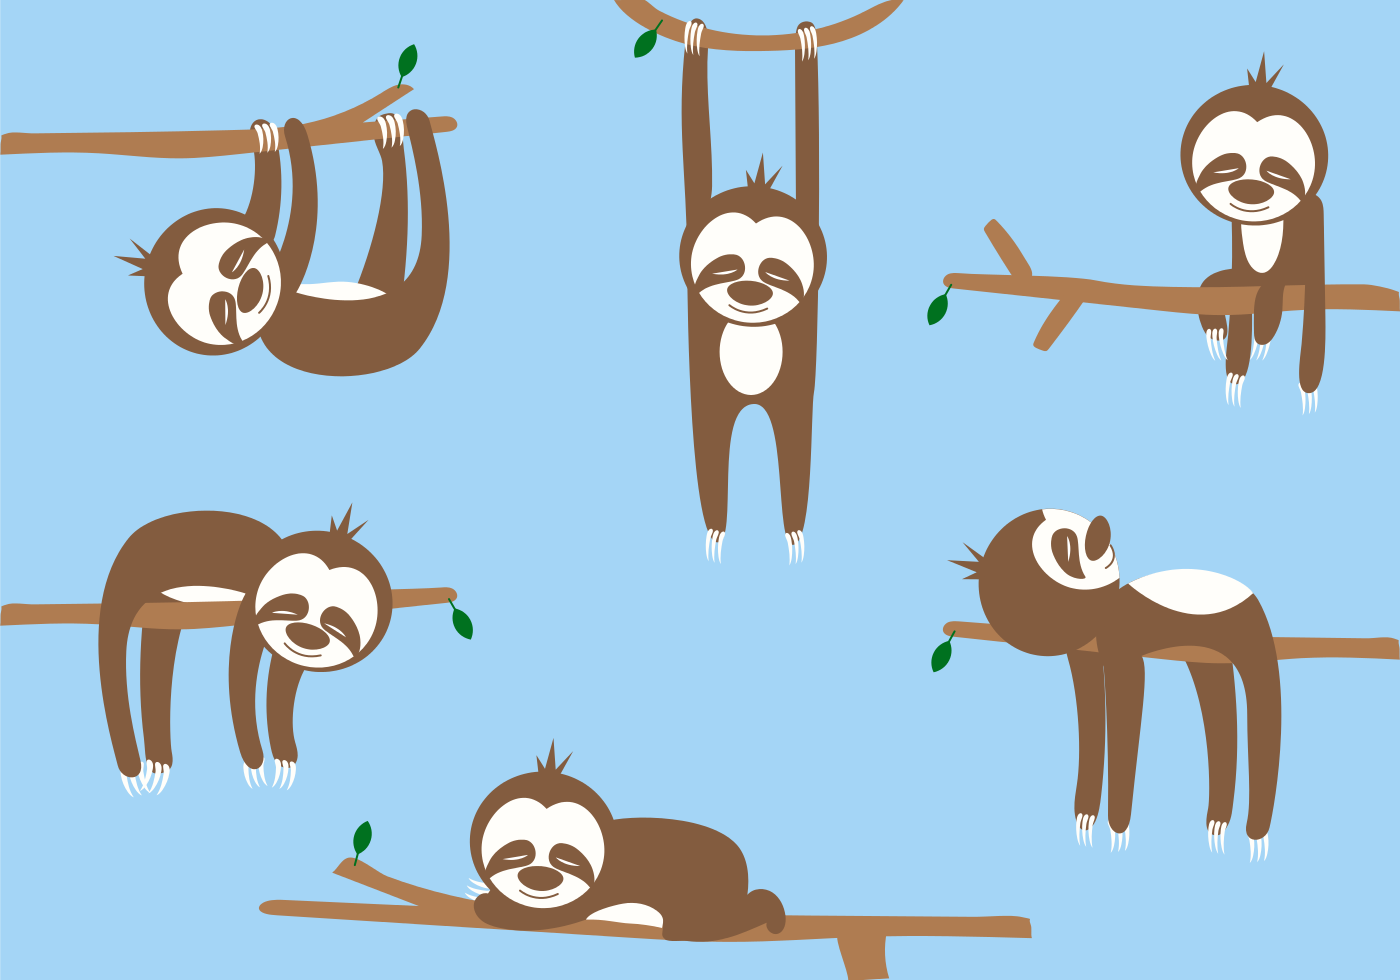 Cartoon picture hanging sloth. animation cartoon sloth